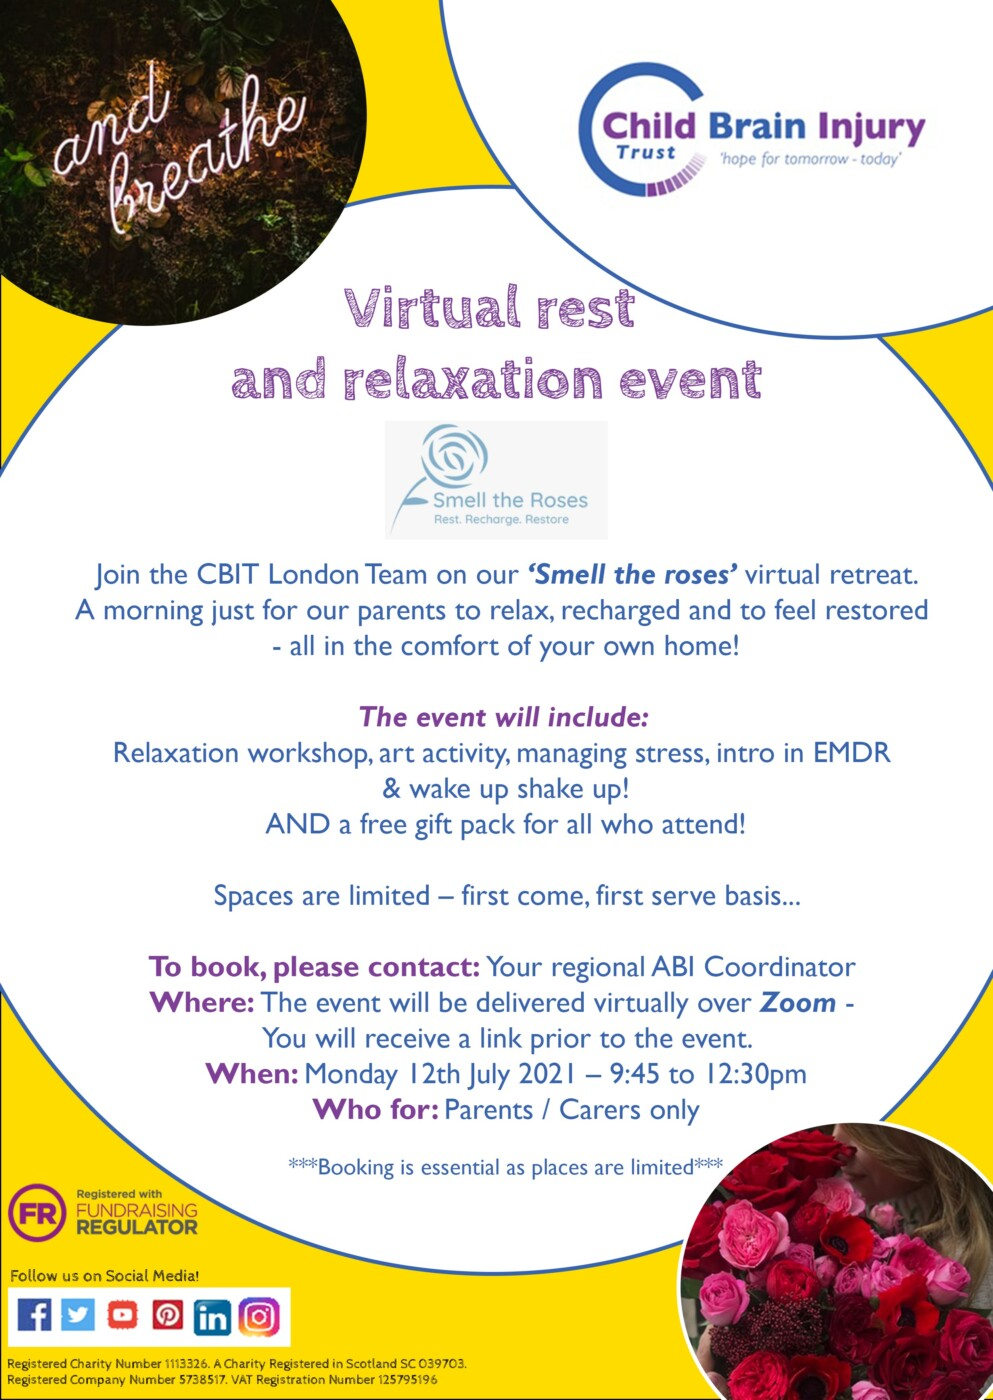 Virtual rest and relaxation event